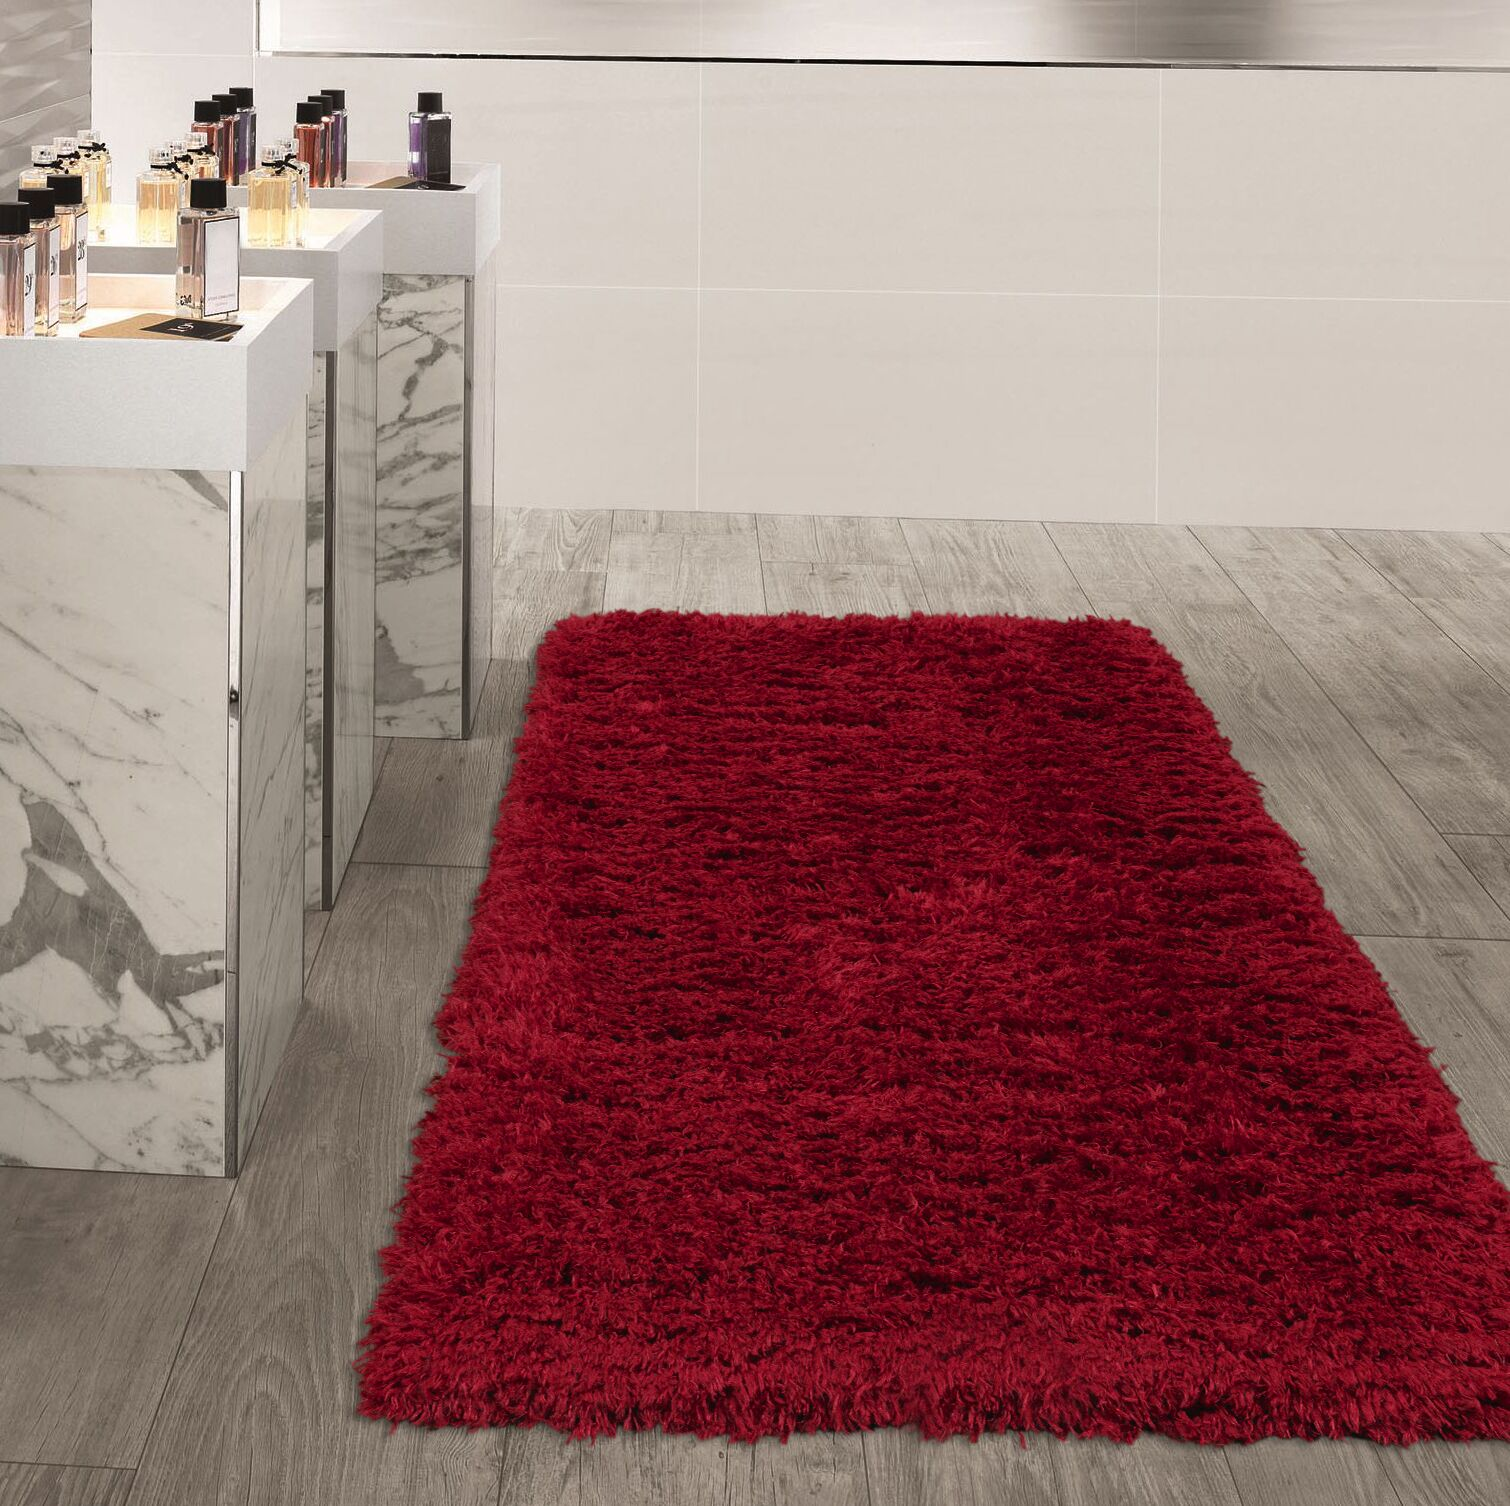 Costantino Soft High Pile Red Area Rug Rug Size: Rectangle 6'7